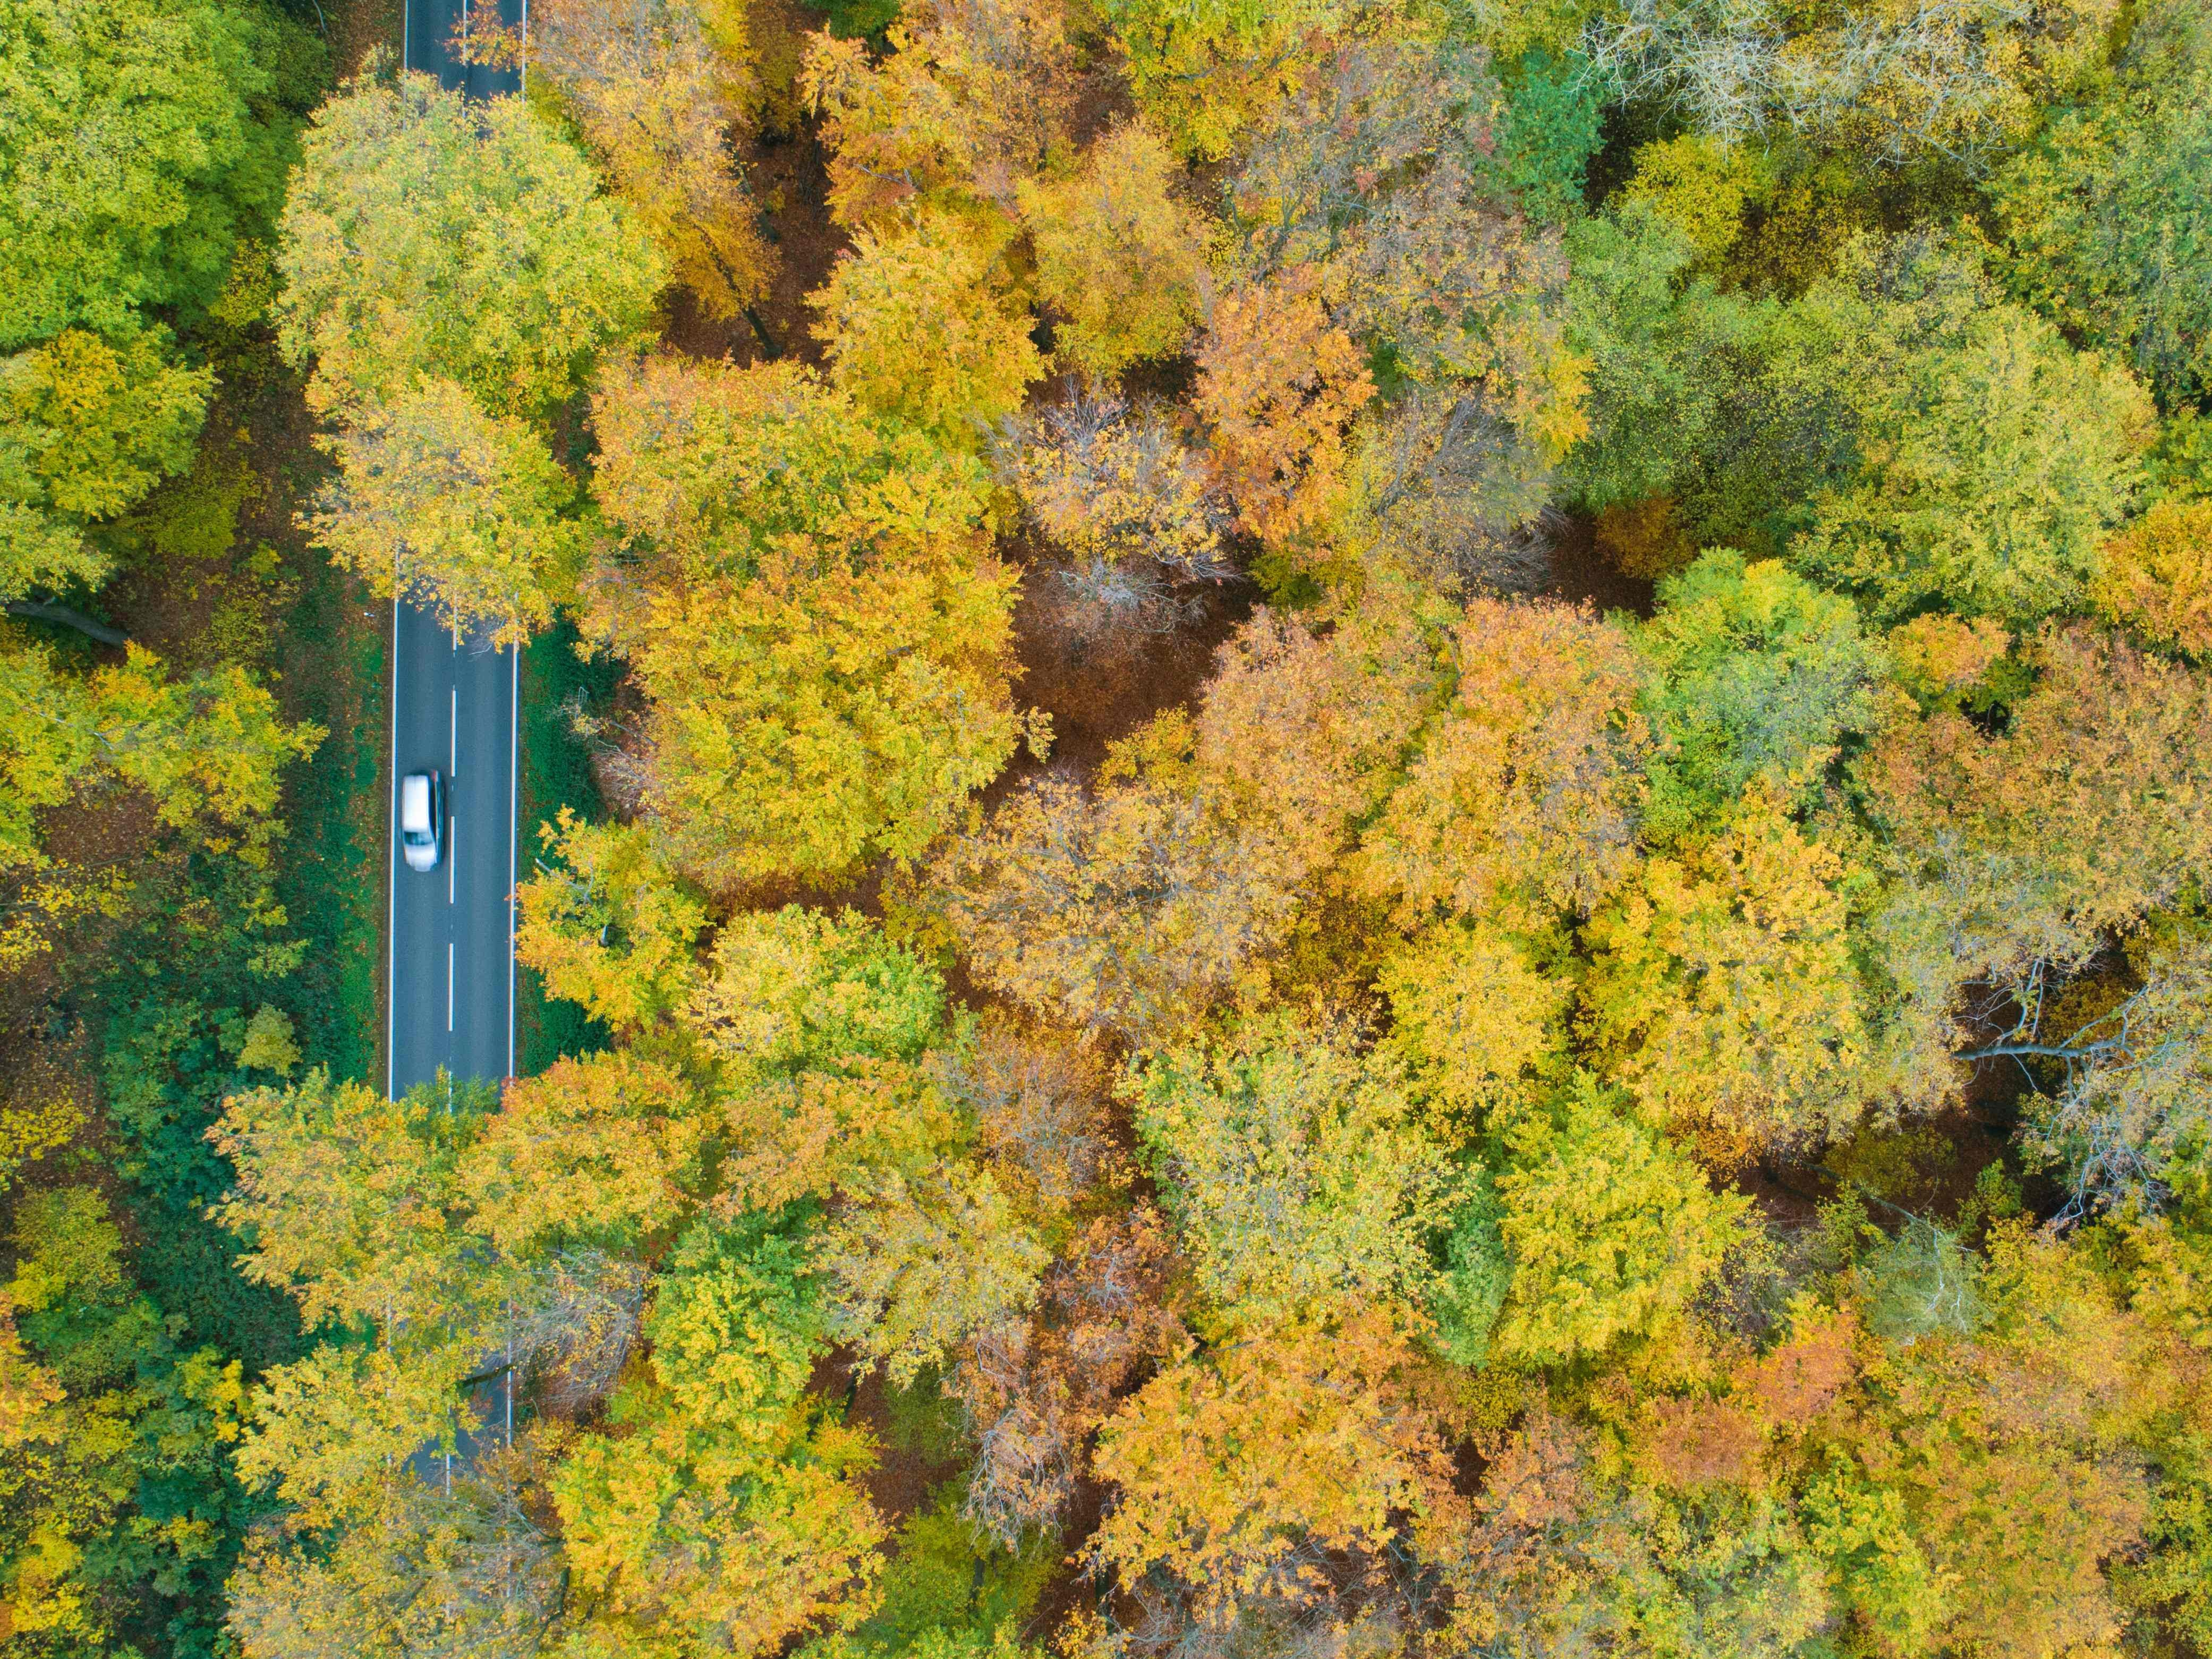 A car can be seen through an autumnally colored deciduous forest in Sehnde, Germany, Nov. 5, 2018.